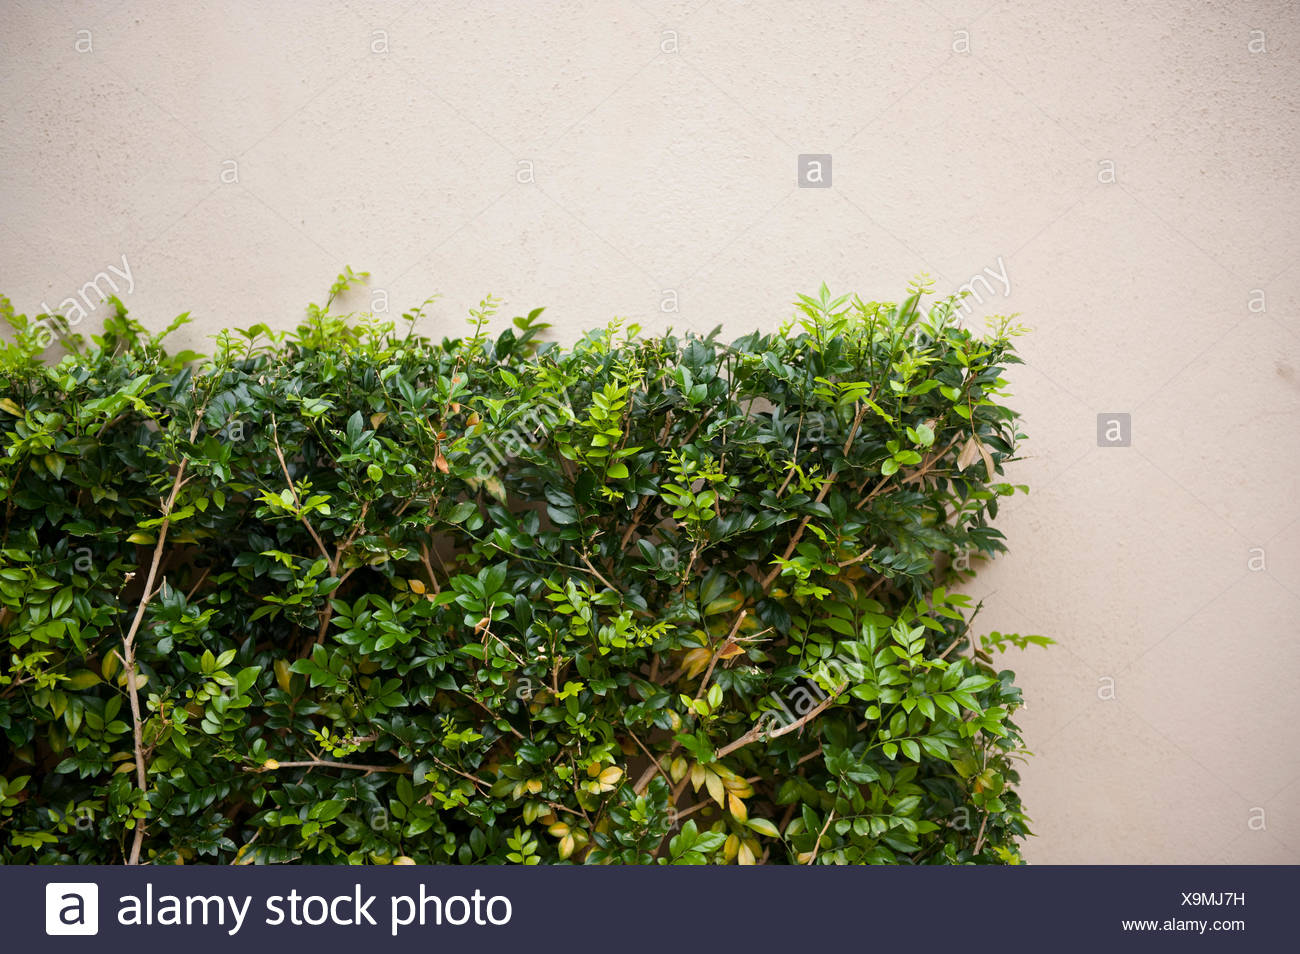 The corner of a trimmed shrub. - Stock Image